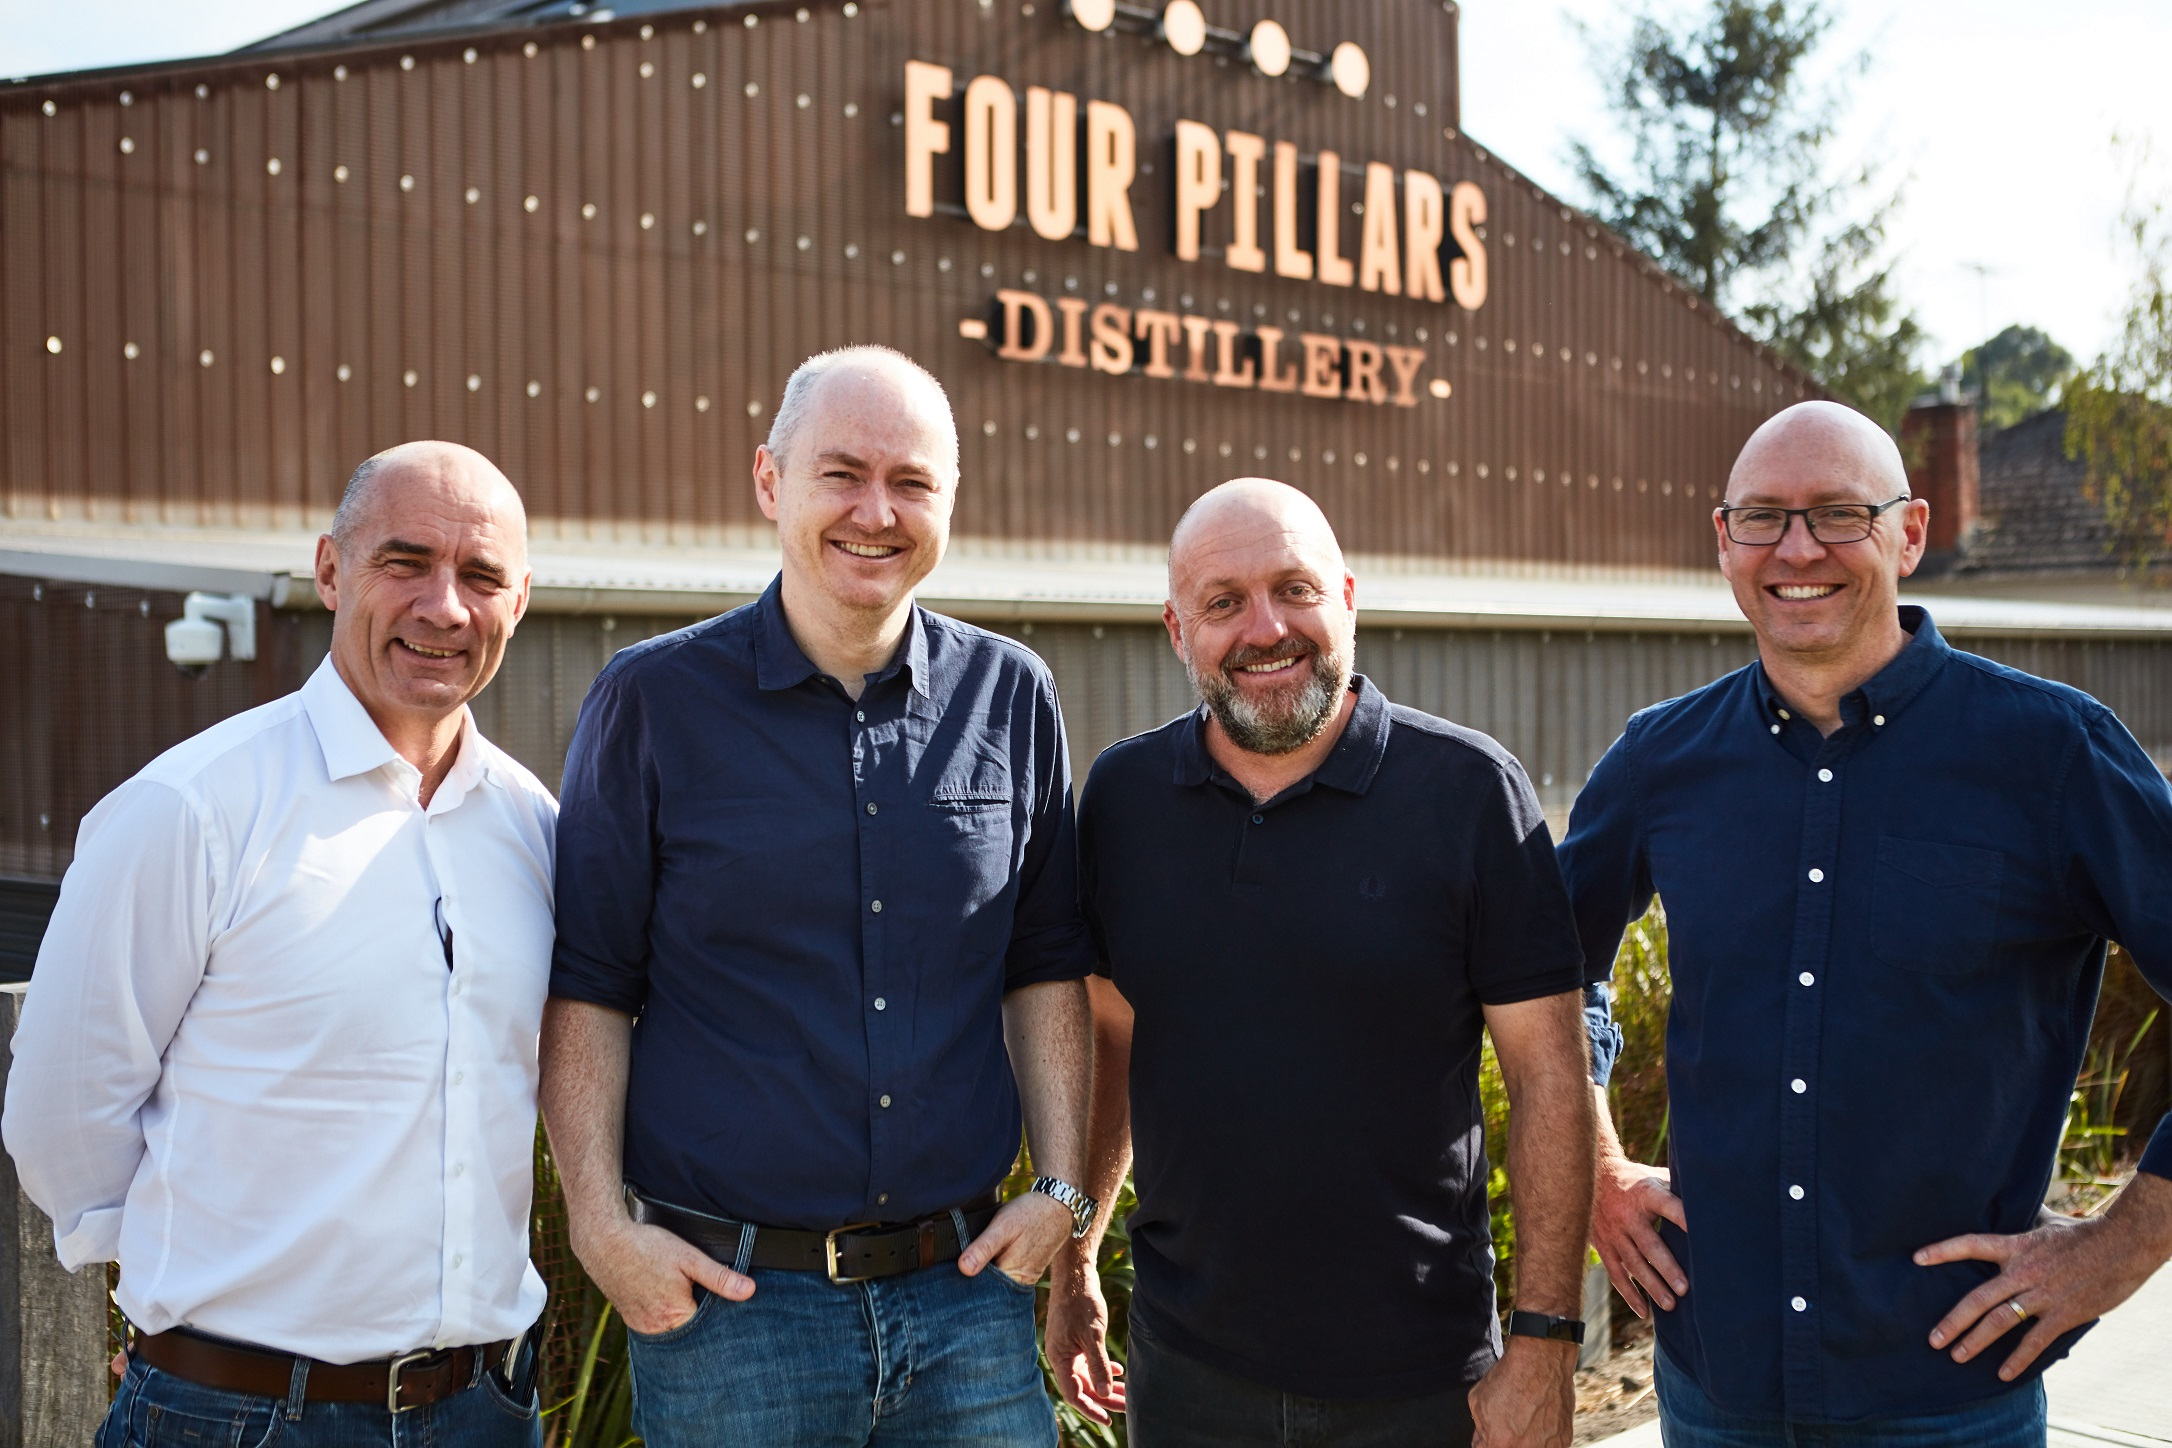 (l-r) Lion's James Brindley with Four Pillars founders Matt Jones, Stuart Gregor and Cameron Mackenzie